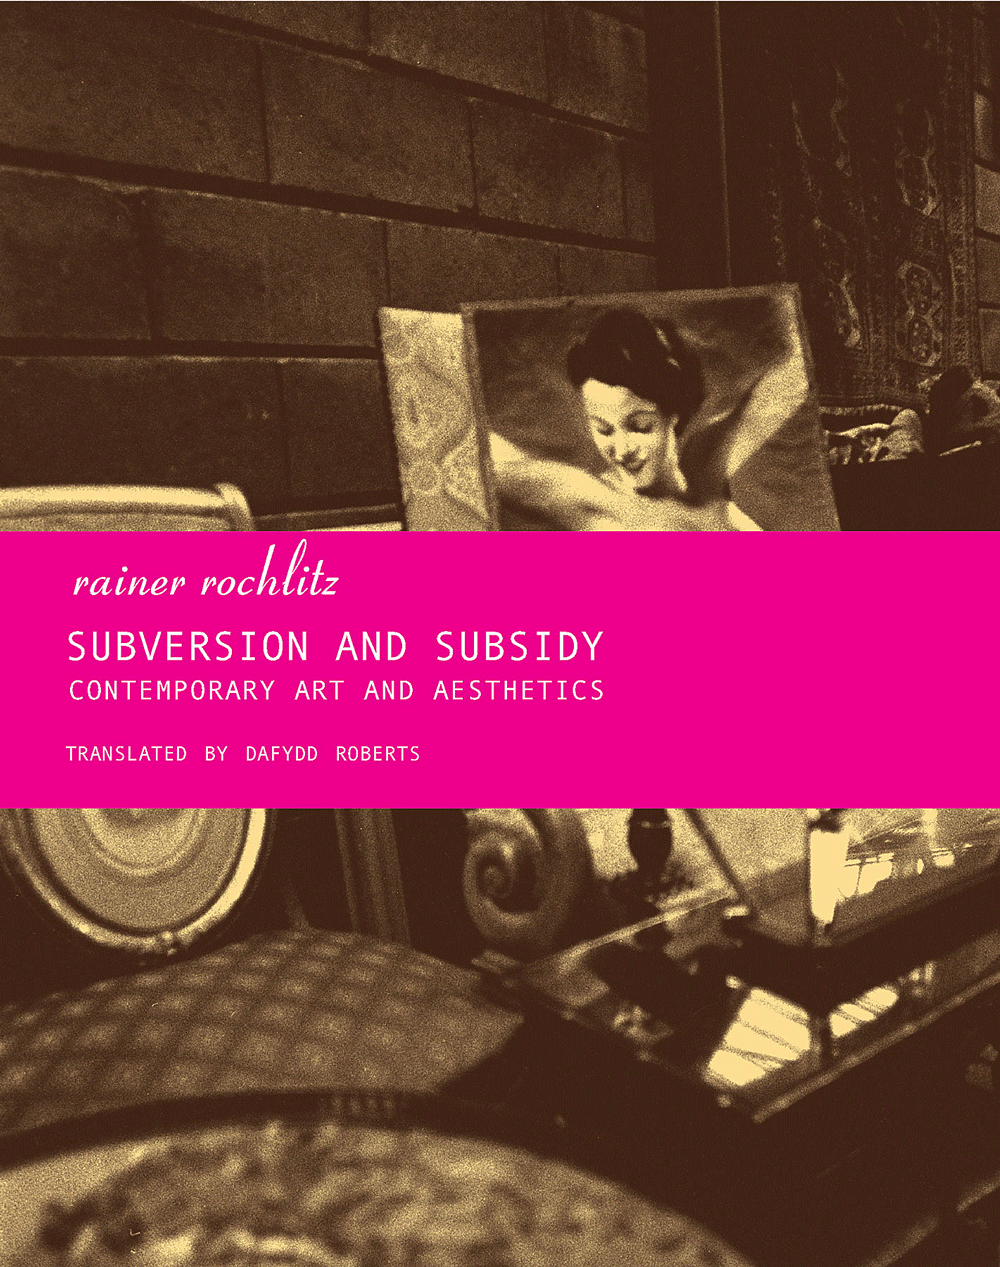 Subversion and Subsidy: Contemporary Art and Aesthetics by François Morin | Seagull Books